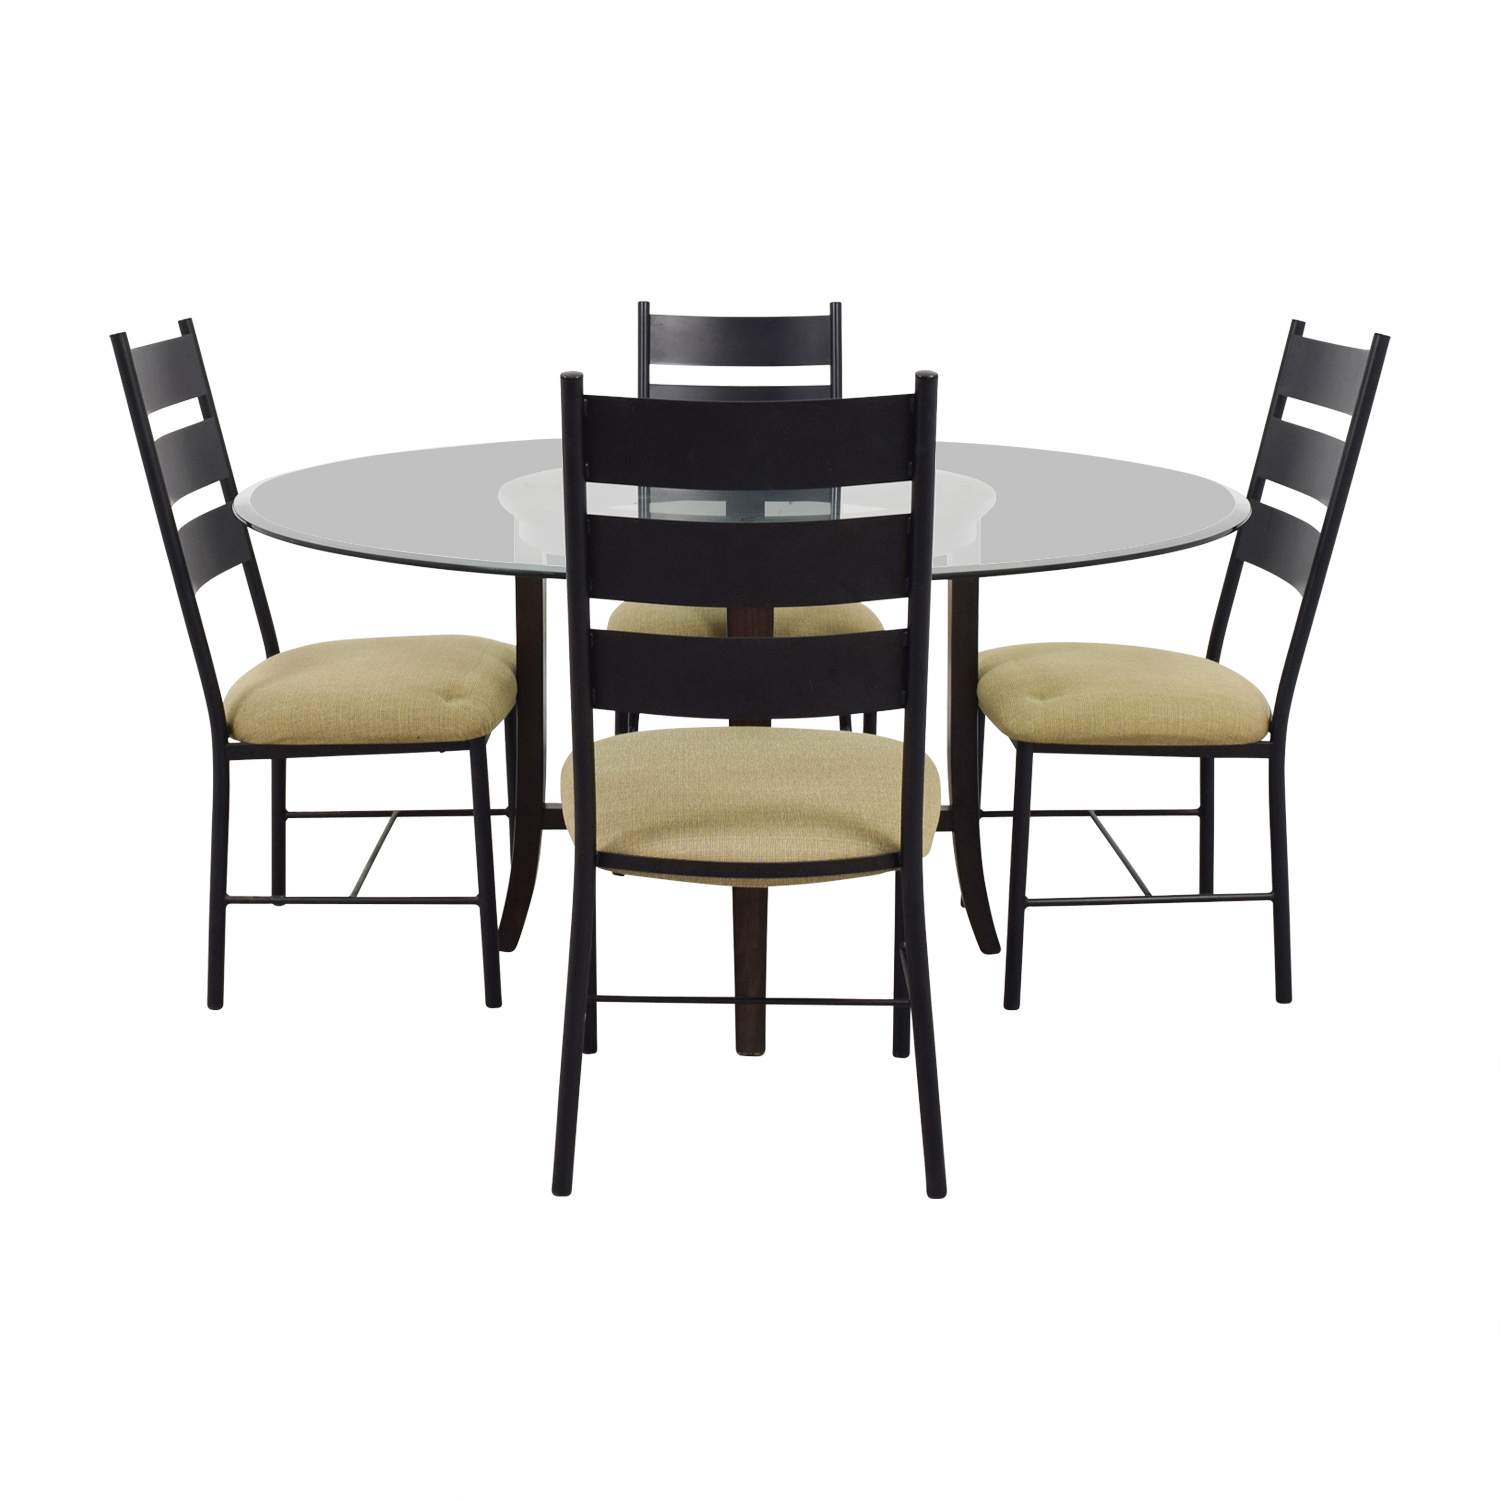 shop Crate & Barrel Halo Ebony Round Glass Top Dining Set Crate & Barrel